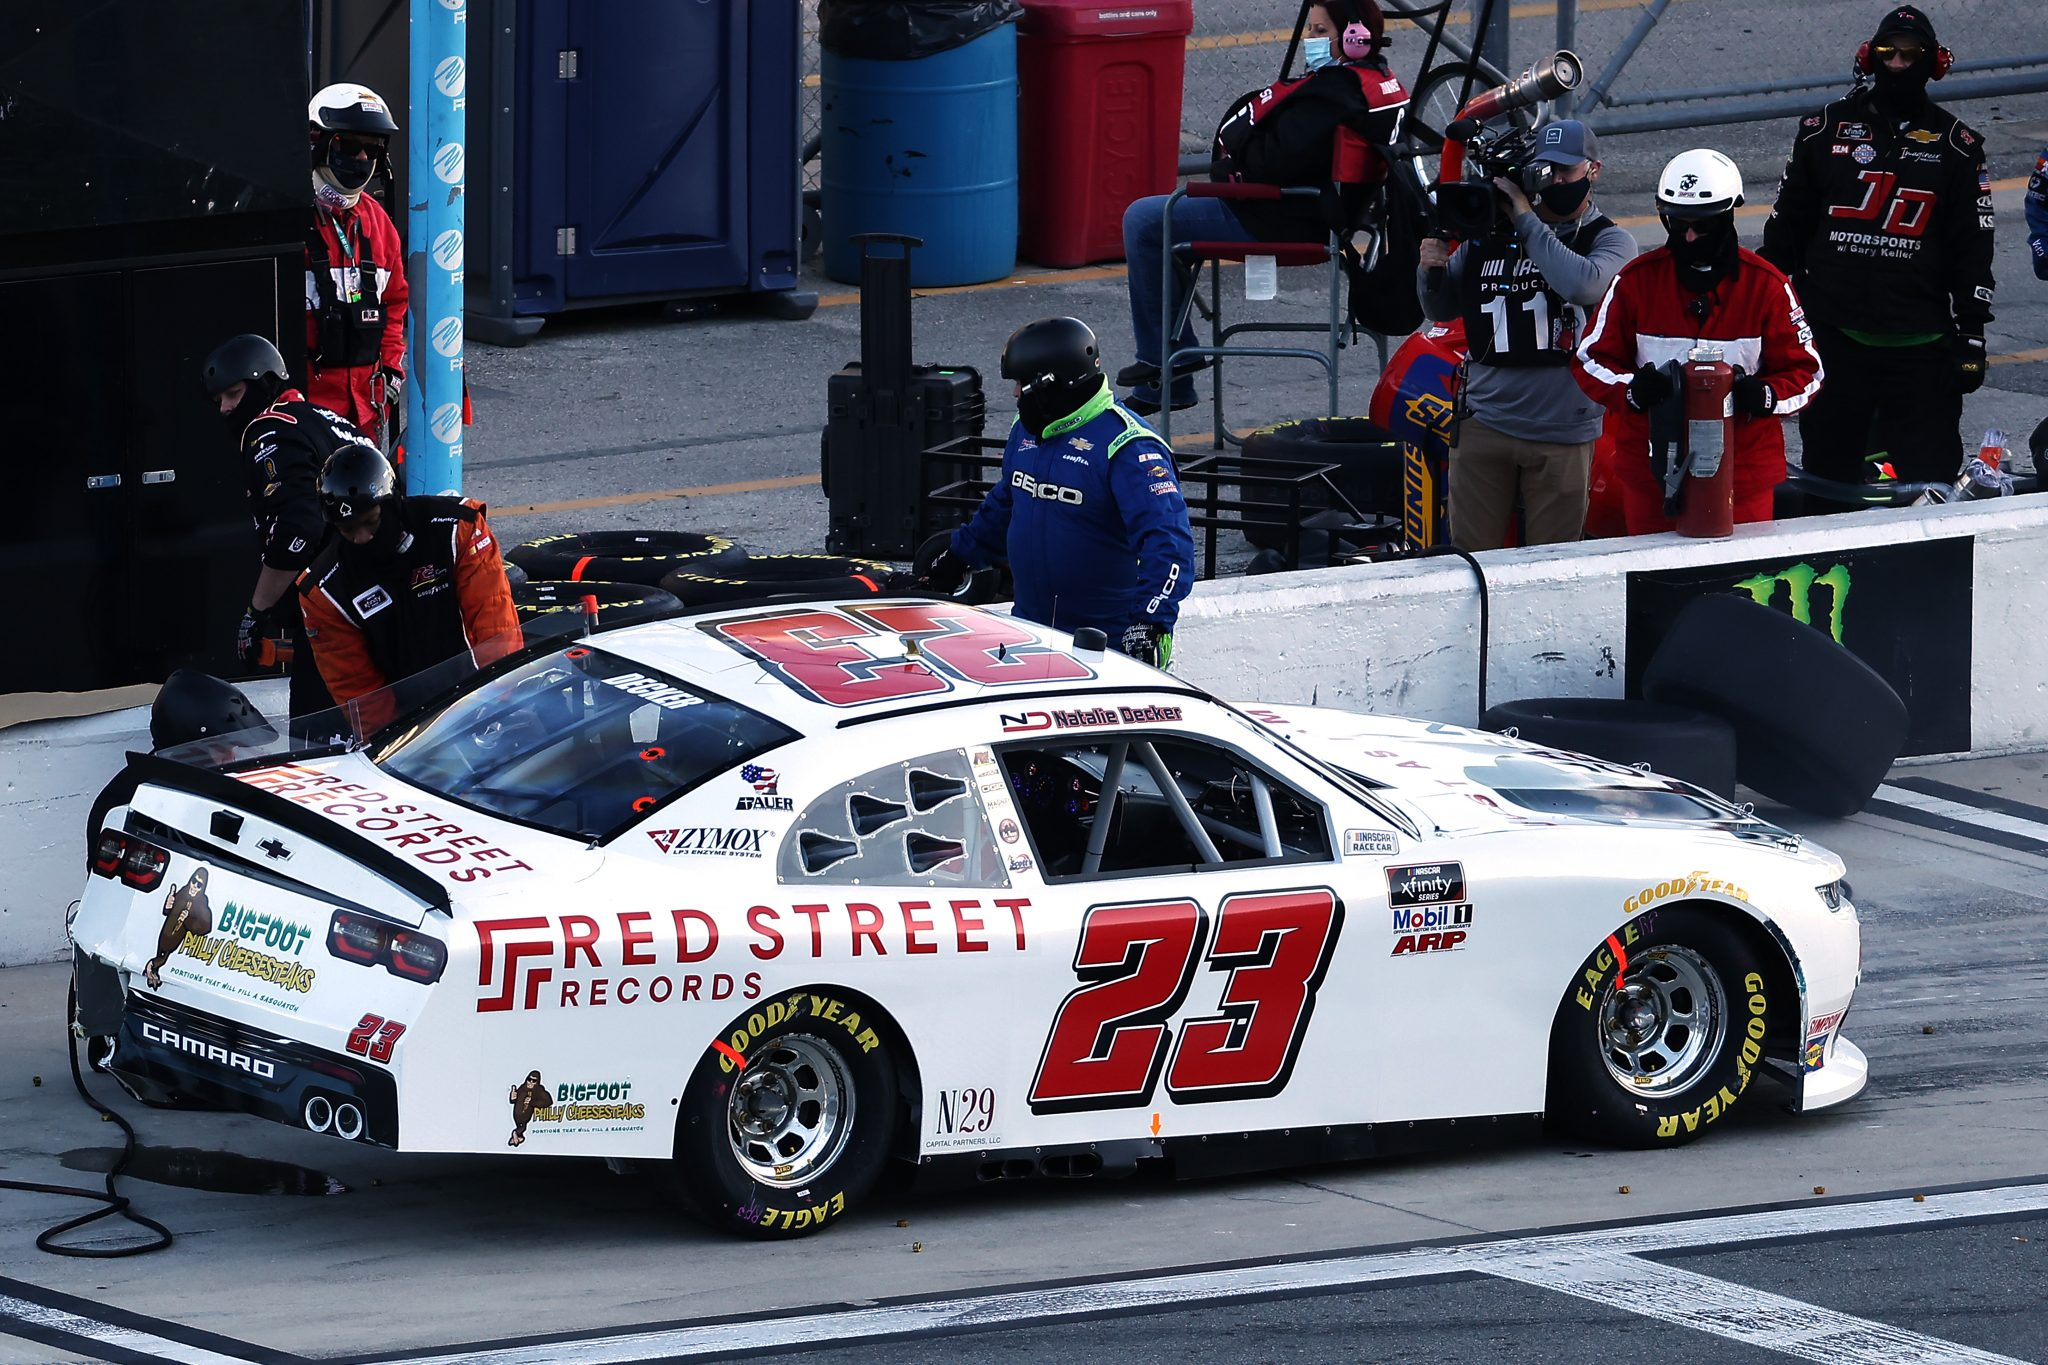 DAYTONA BEACH, FLORIDA - FEBRUARY 20: Natalie Decker, driver of the #23 Red Street Records Chevrolet, pits during the NASCAR Xfinity Super Start Batteries 188 At Daytona Presented by O'Reilly at Daytona International Speedway on February 20, 2021 in Daytona Beach, Florida. (Photo by James Gilbert/Getty Images) | Getty Images